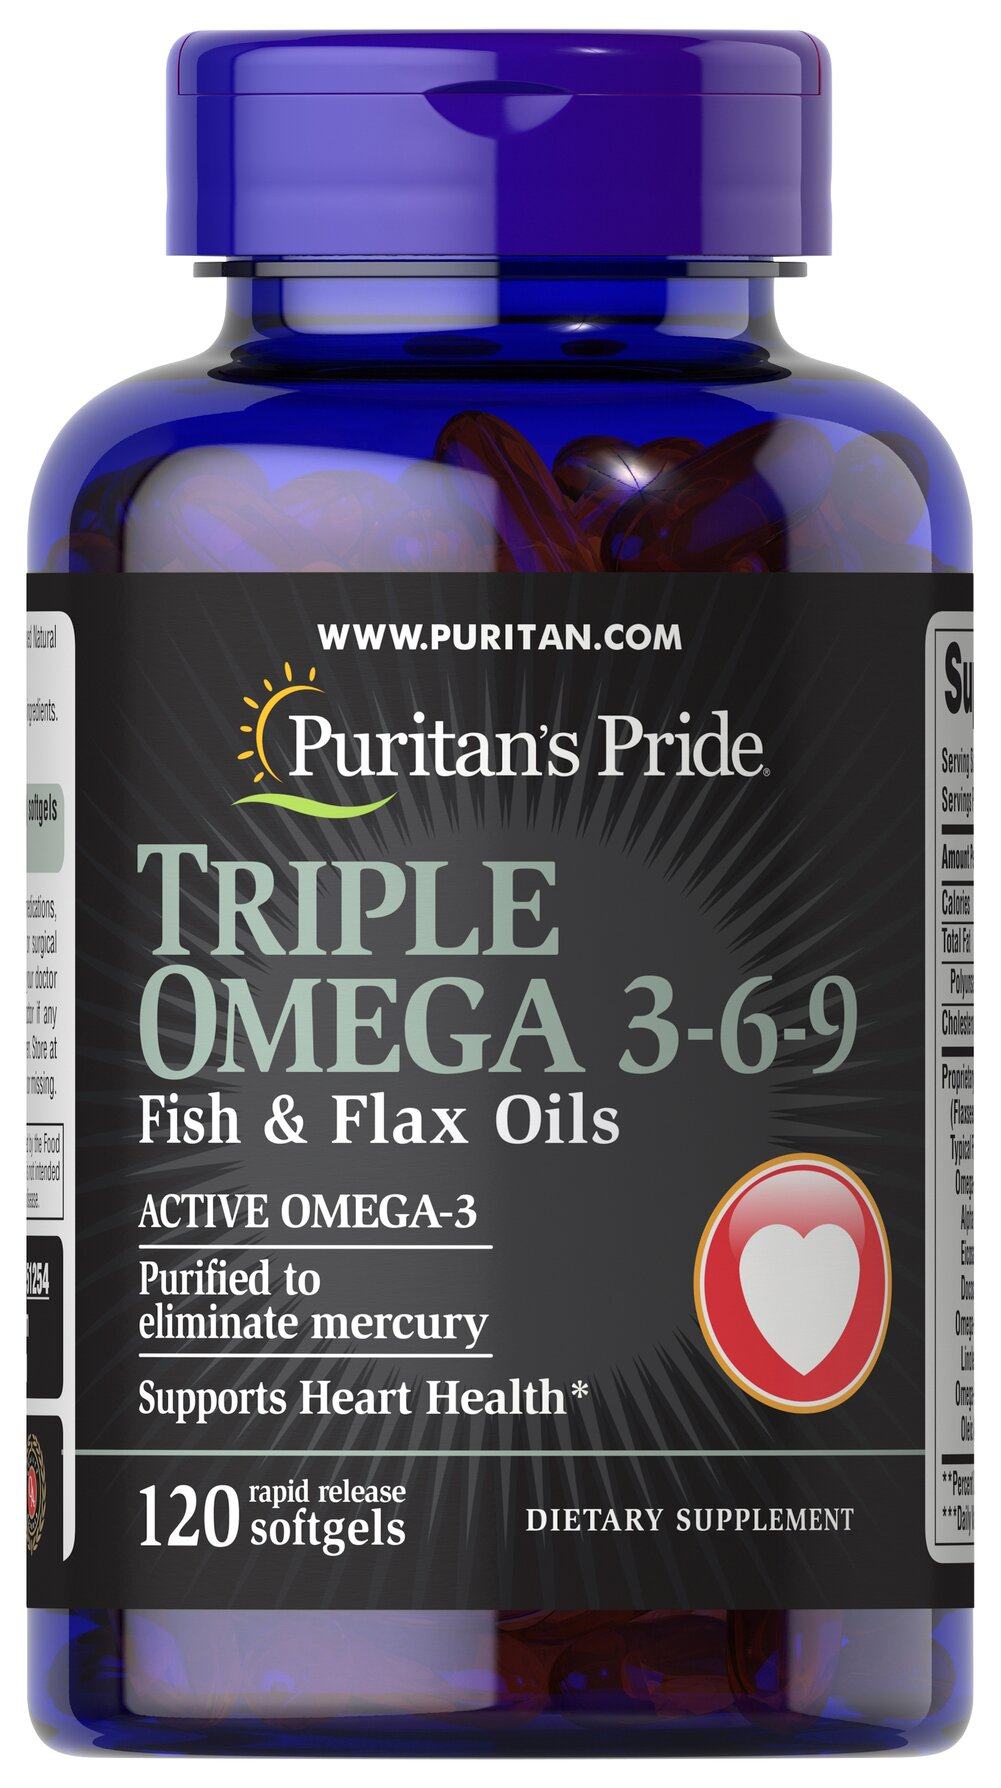 "Triple Omega 3-6-9 Fish & Flax Oils <p>Contains Omega-3, Omega-6 and Omega-9 – the ""good"" fats important for cellular, heart and metabolic health.**  </p><p>TRIPLE OMEGA 3-6-9 Fish and Flax Oils contain a proprietary blend of essential oils, including Flaxseed Oil and  Ester Omega Fish Oil. </p><p>Supports Heart Health.* </p><strong></strong><p>Purified to eliminate mercury.</p><p></p> 120 Softgels  $19.99"